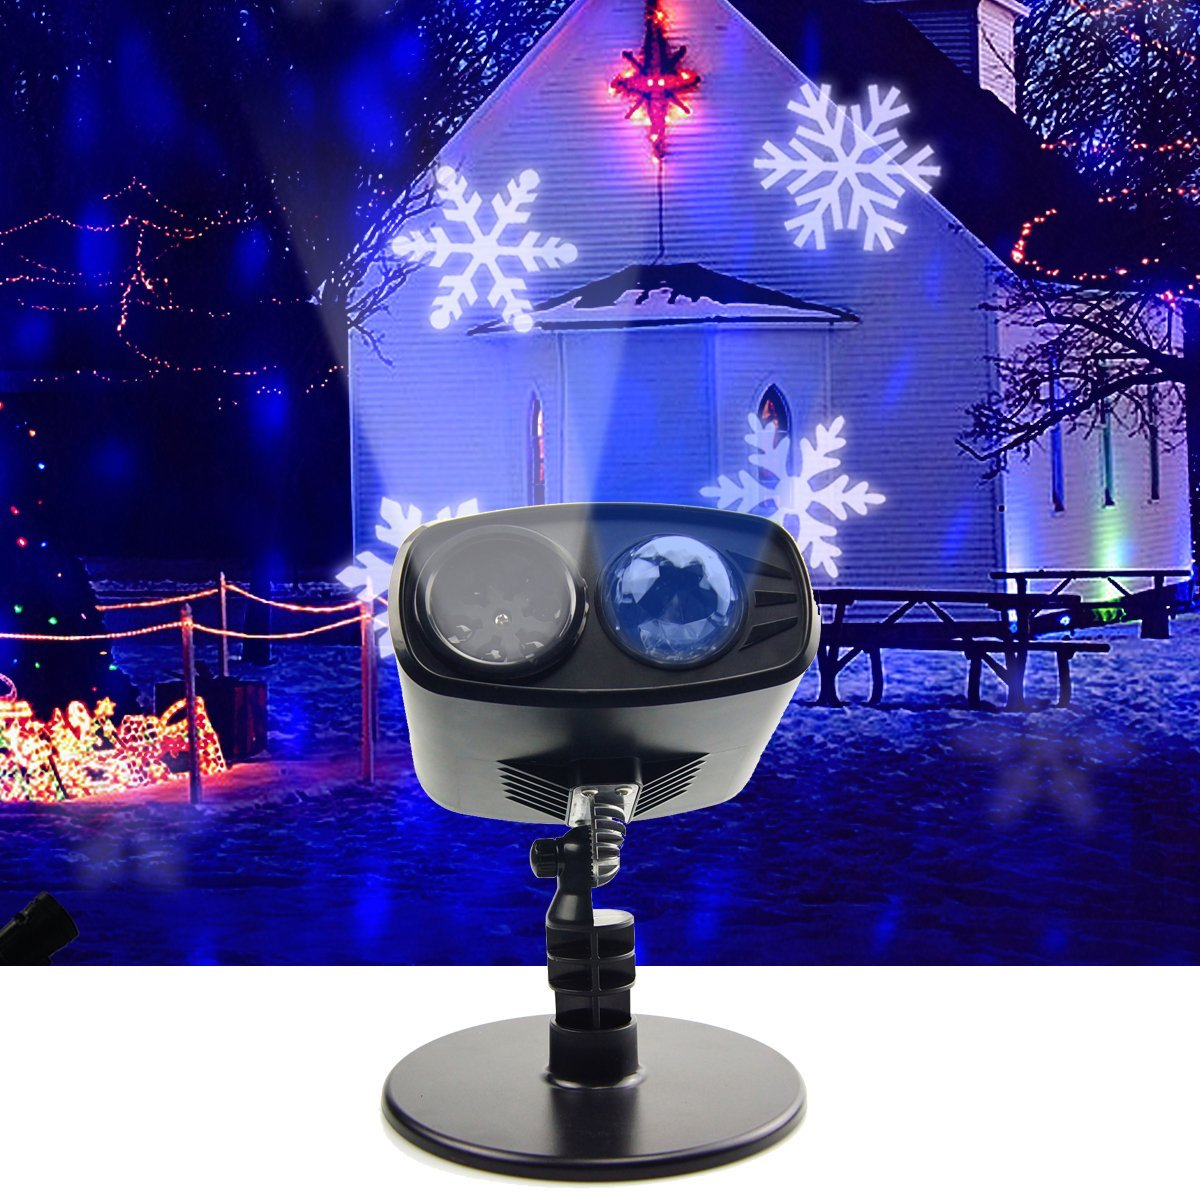 3Modes Snowflake LED Moving Head Stage Light Landscape Projector Laser Lamp For Christmas Party Light Garden Outdoor3Modes Snowflake LED Moving Head Stage Light Landscape Projector Laser Lamp For Christmas Party Light Garden Outdoor